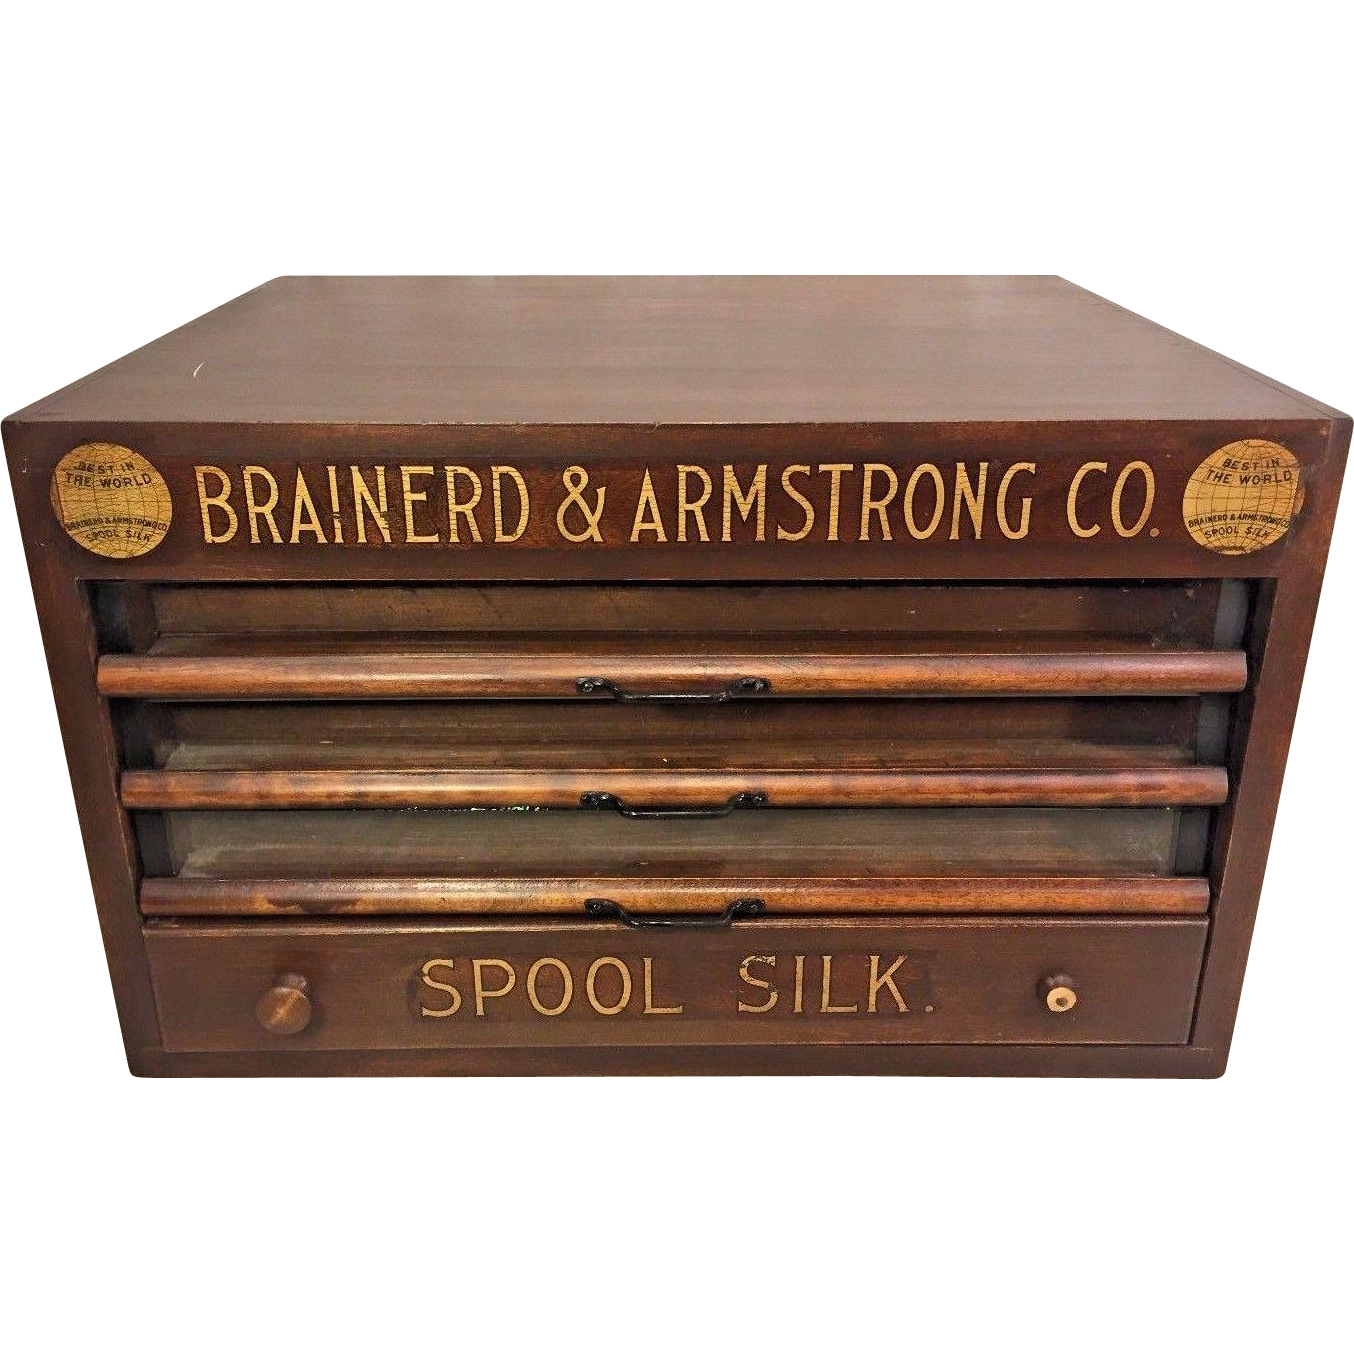 Antique Brainerd & Armstrong Wood Spool Cabinet 4 Drawers Glass Brass &  Wood Great Gold Colored Stenciling - Antique Brainerd & Armstrong Wood Spool Cabinet 4 Drawers Glass